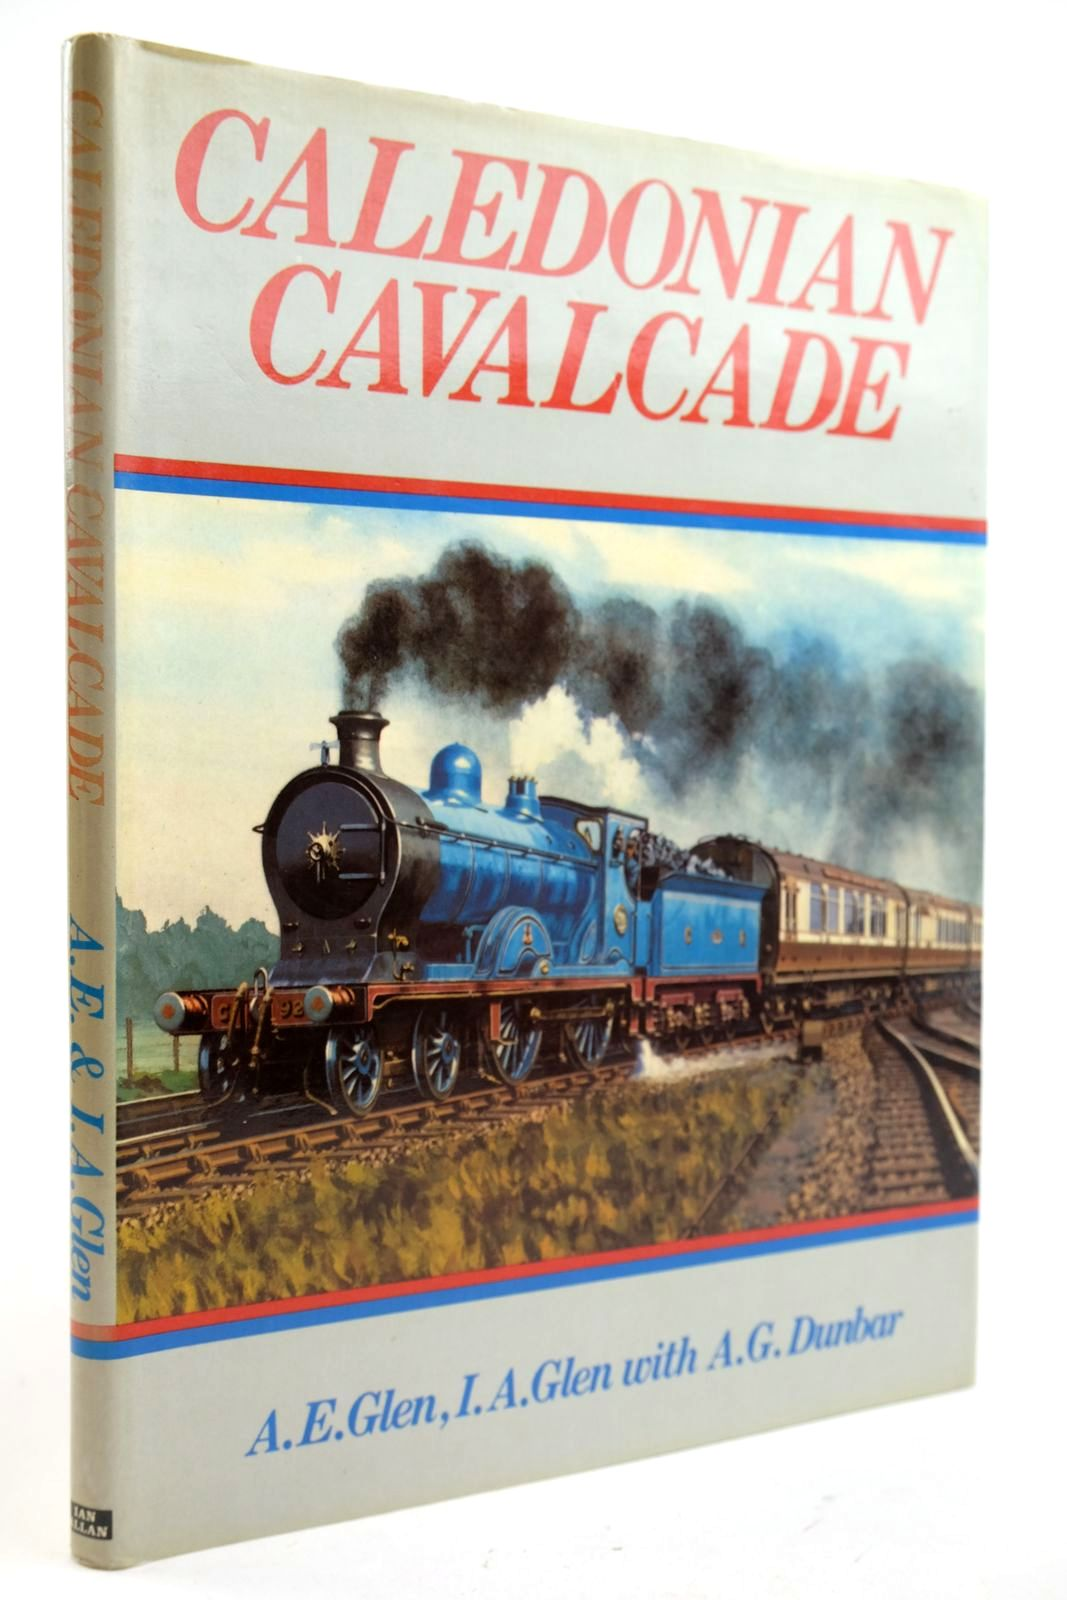 Photo of CALEDONIAN CAVALCADE written by Glen, A.E. Glen, I.A. Dunbar, Alan G. published by Ian Allan (STOCK CODE: 2133125)  for sale by Stella & Rose's Books